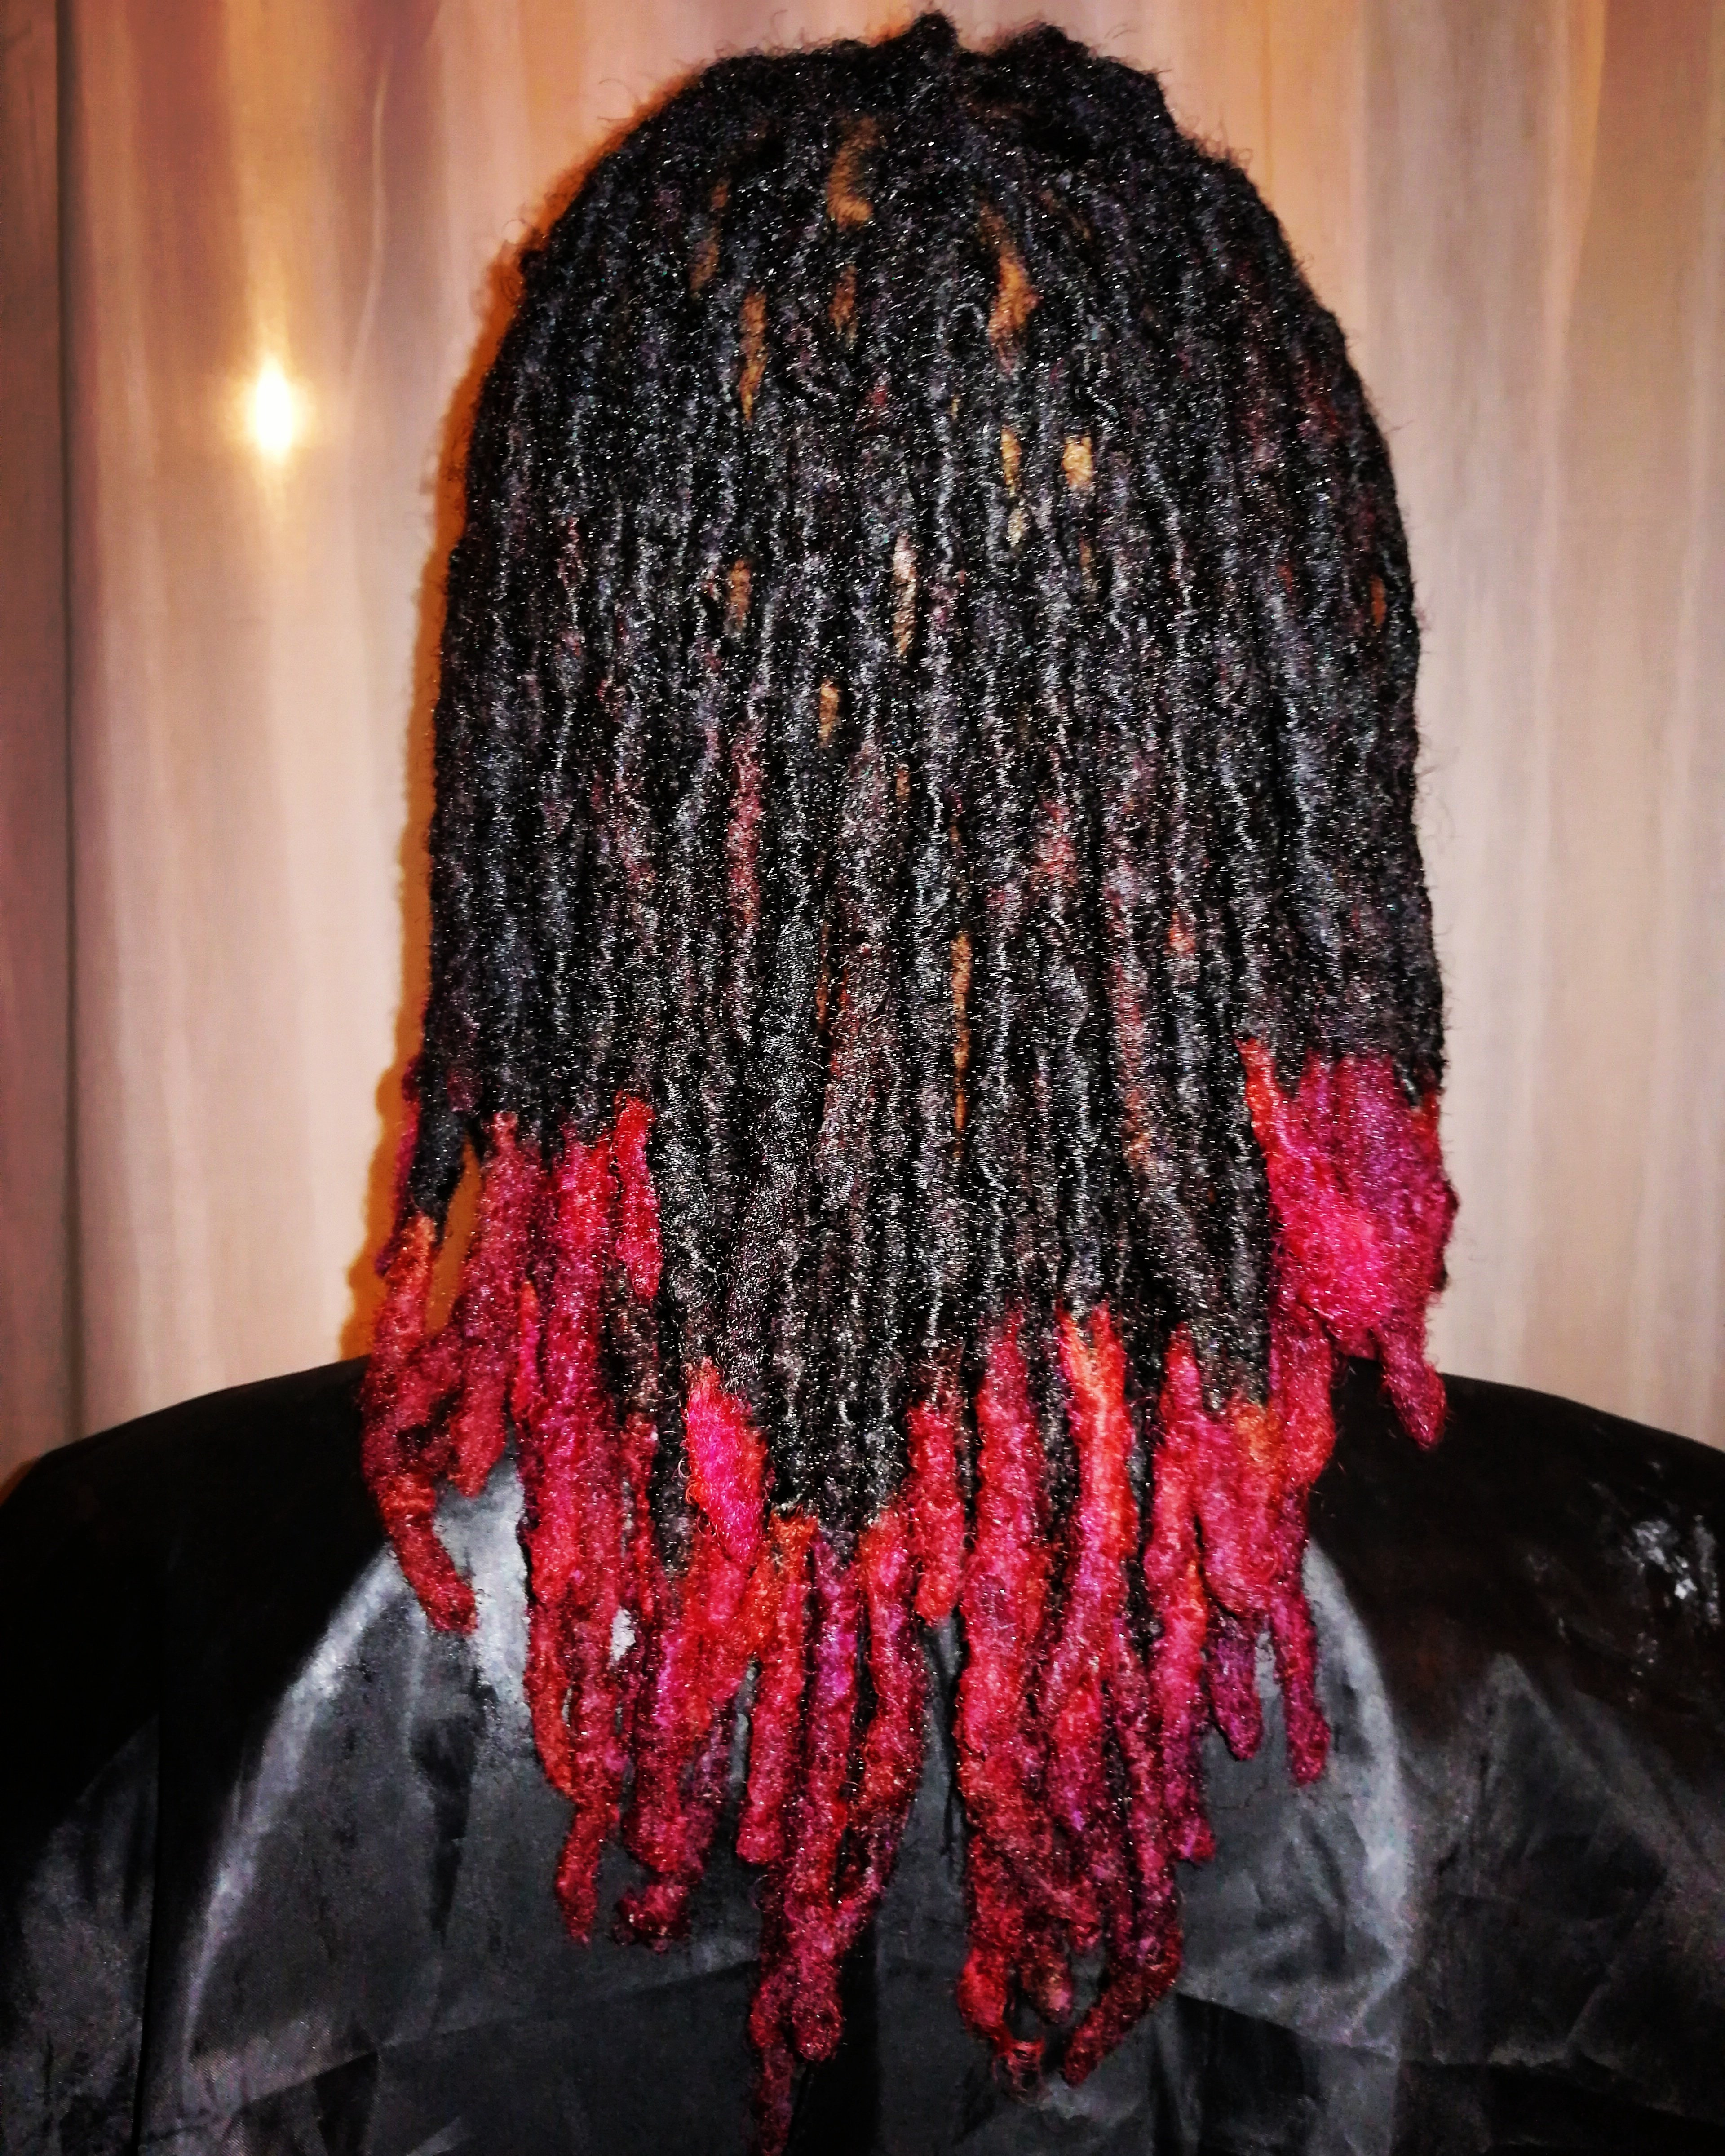 salon de coiffure afro tresse tresses box braids crochet braids vanilles tissages paris 75 77 78 91 92 93 94 95 ATQYAINY